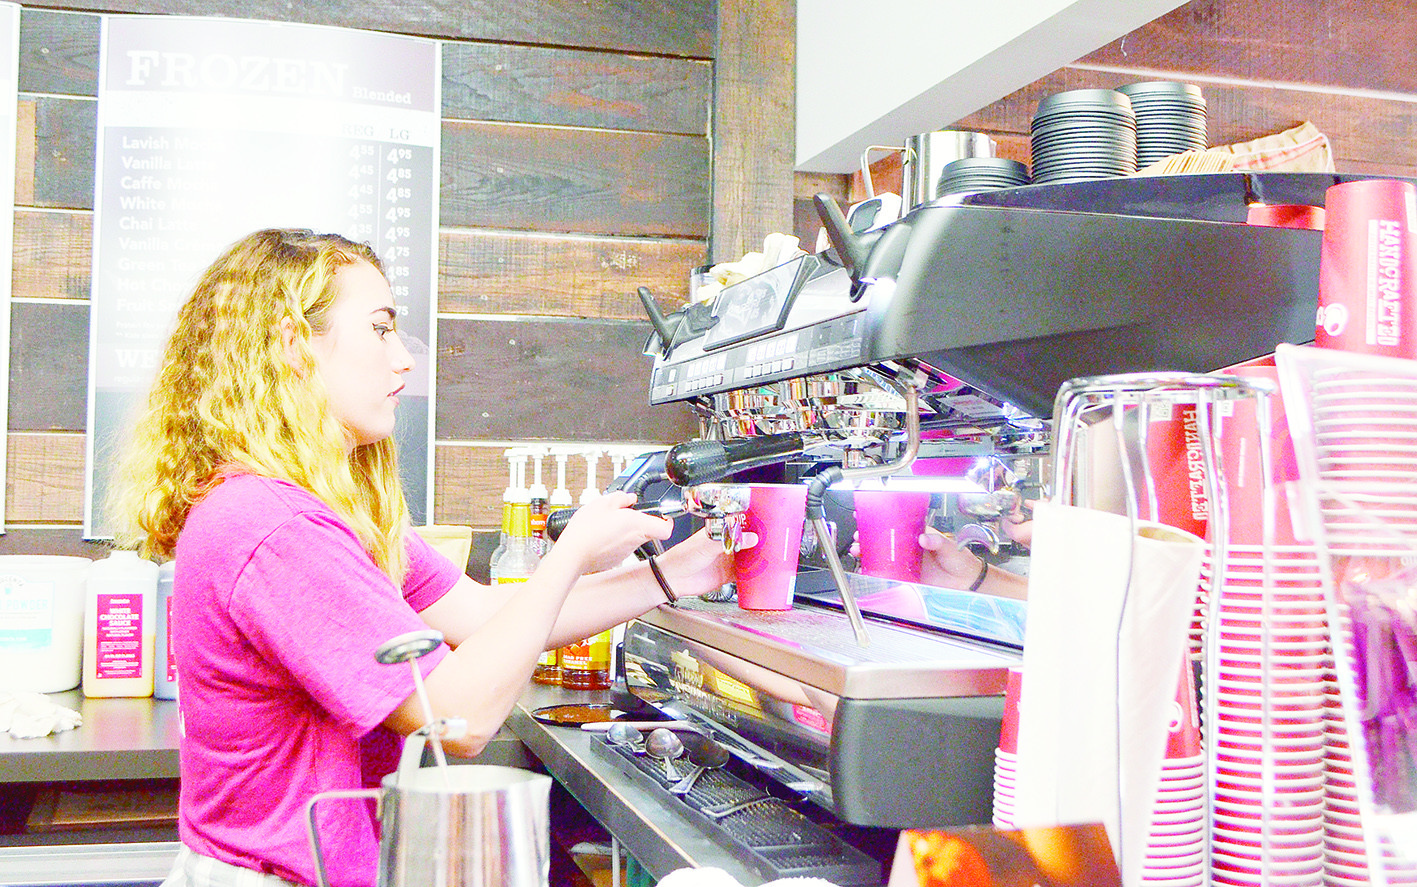 Lavish Boutique and Coffee Bar is in the running to be named the Retailer of the Year by the Alabama Retail Association.